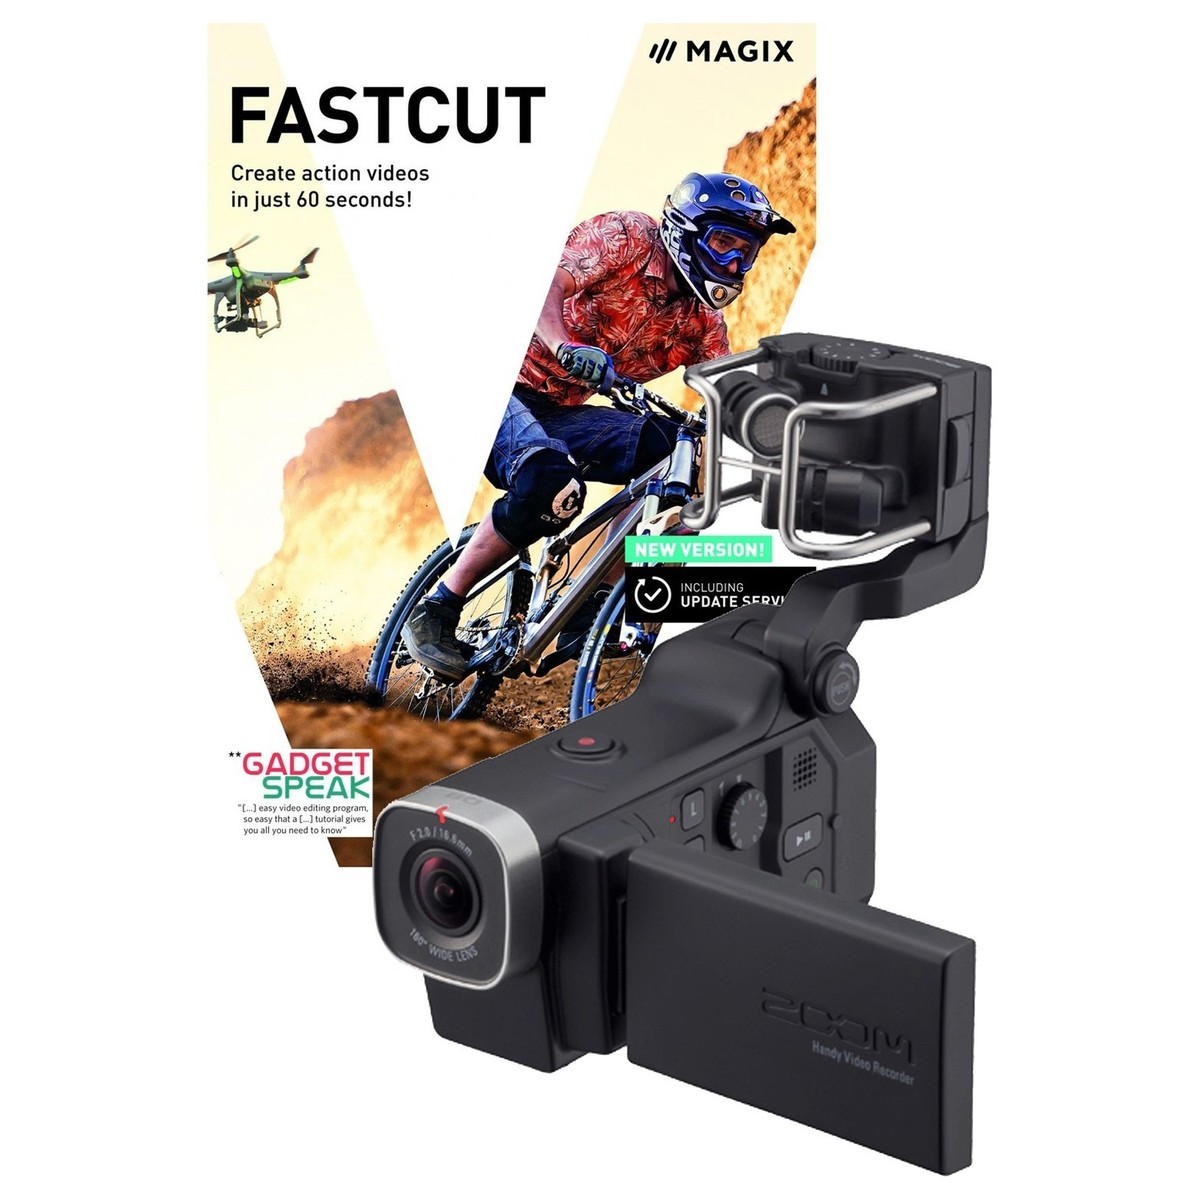 Zoom Q8 Handy Video Recorder with Fastcut Video Editing Software